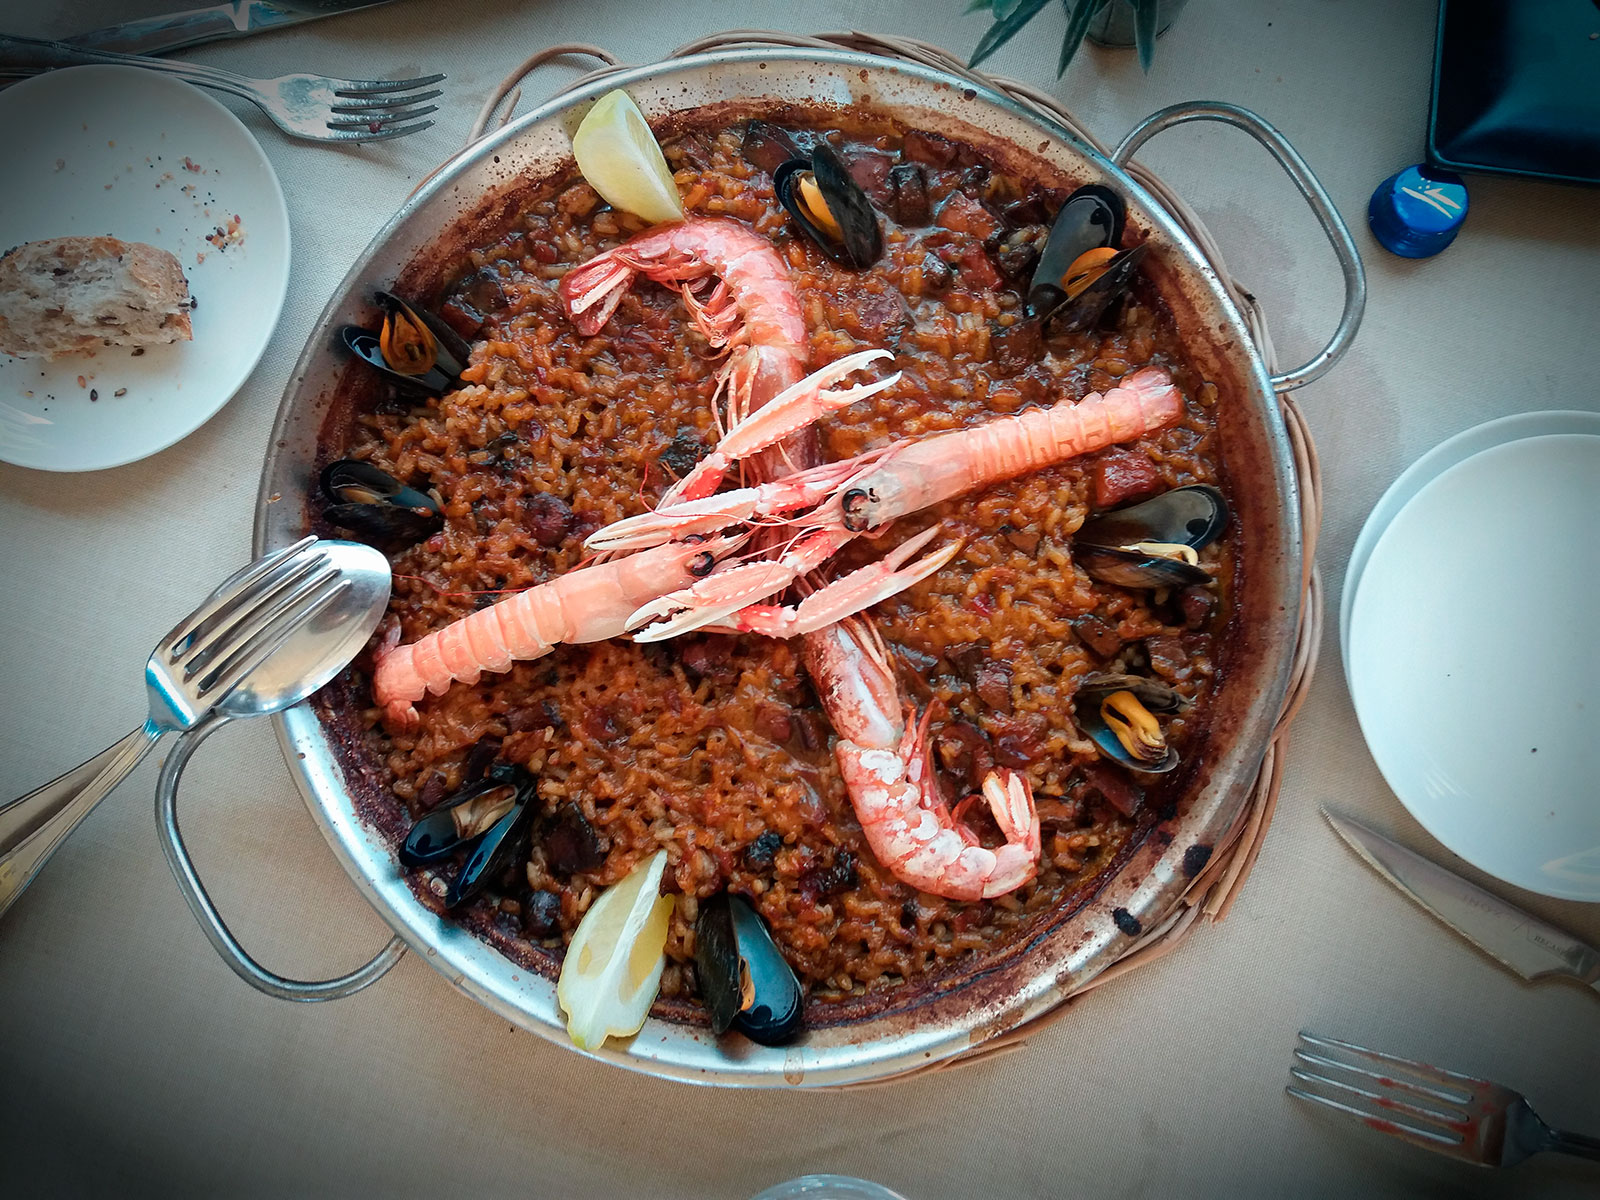 Seafood Paella or Paella Marinera at Celler Sant Antoni in Blanes, Costa Brava, Catalonia, Spain